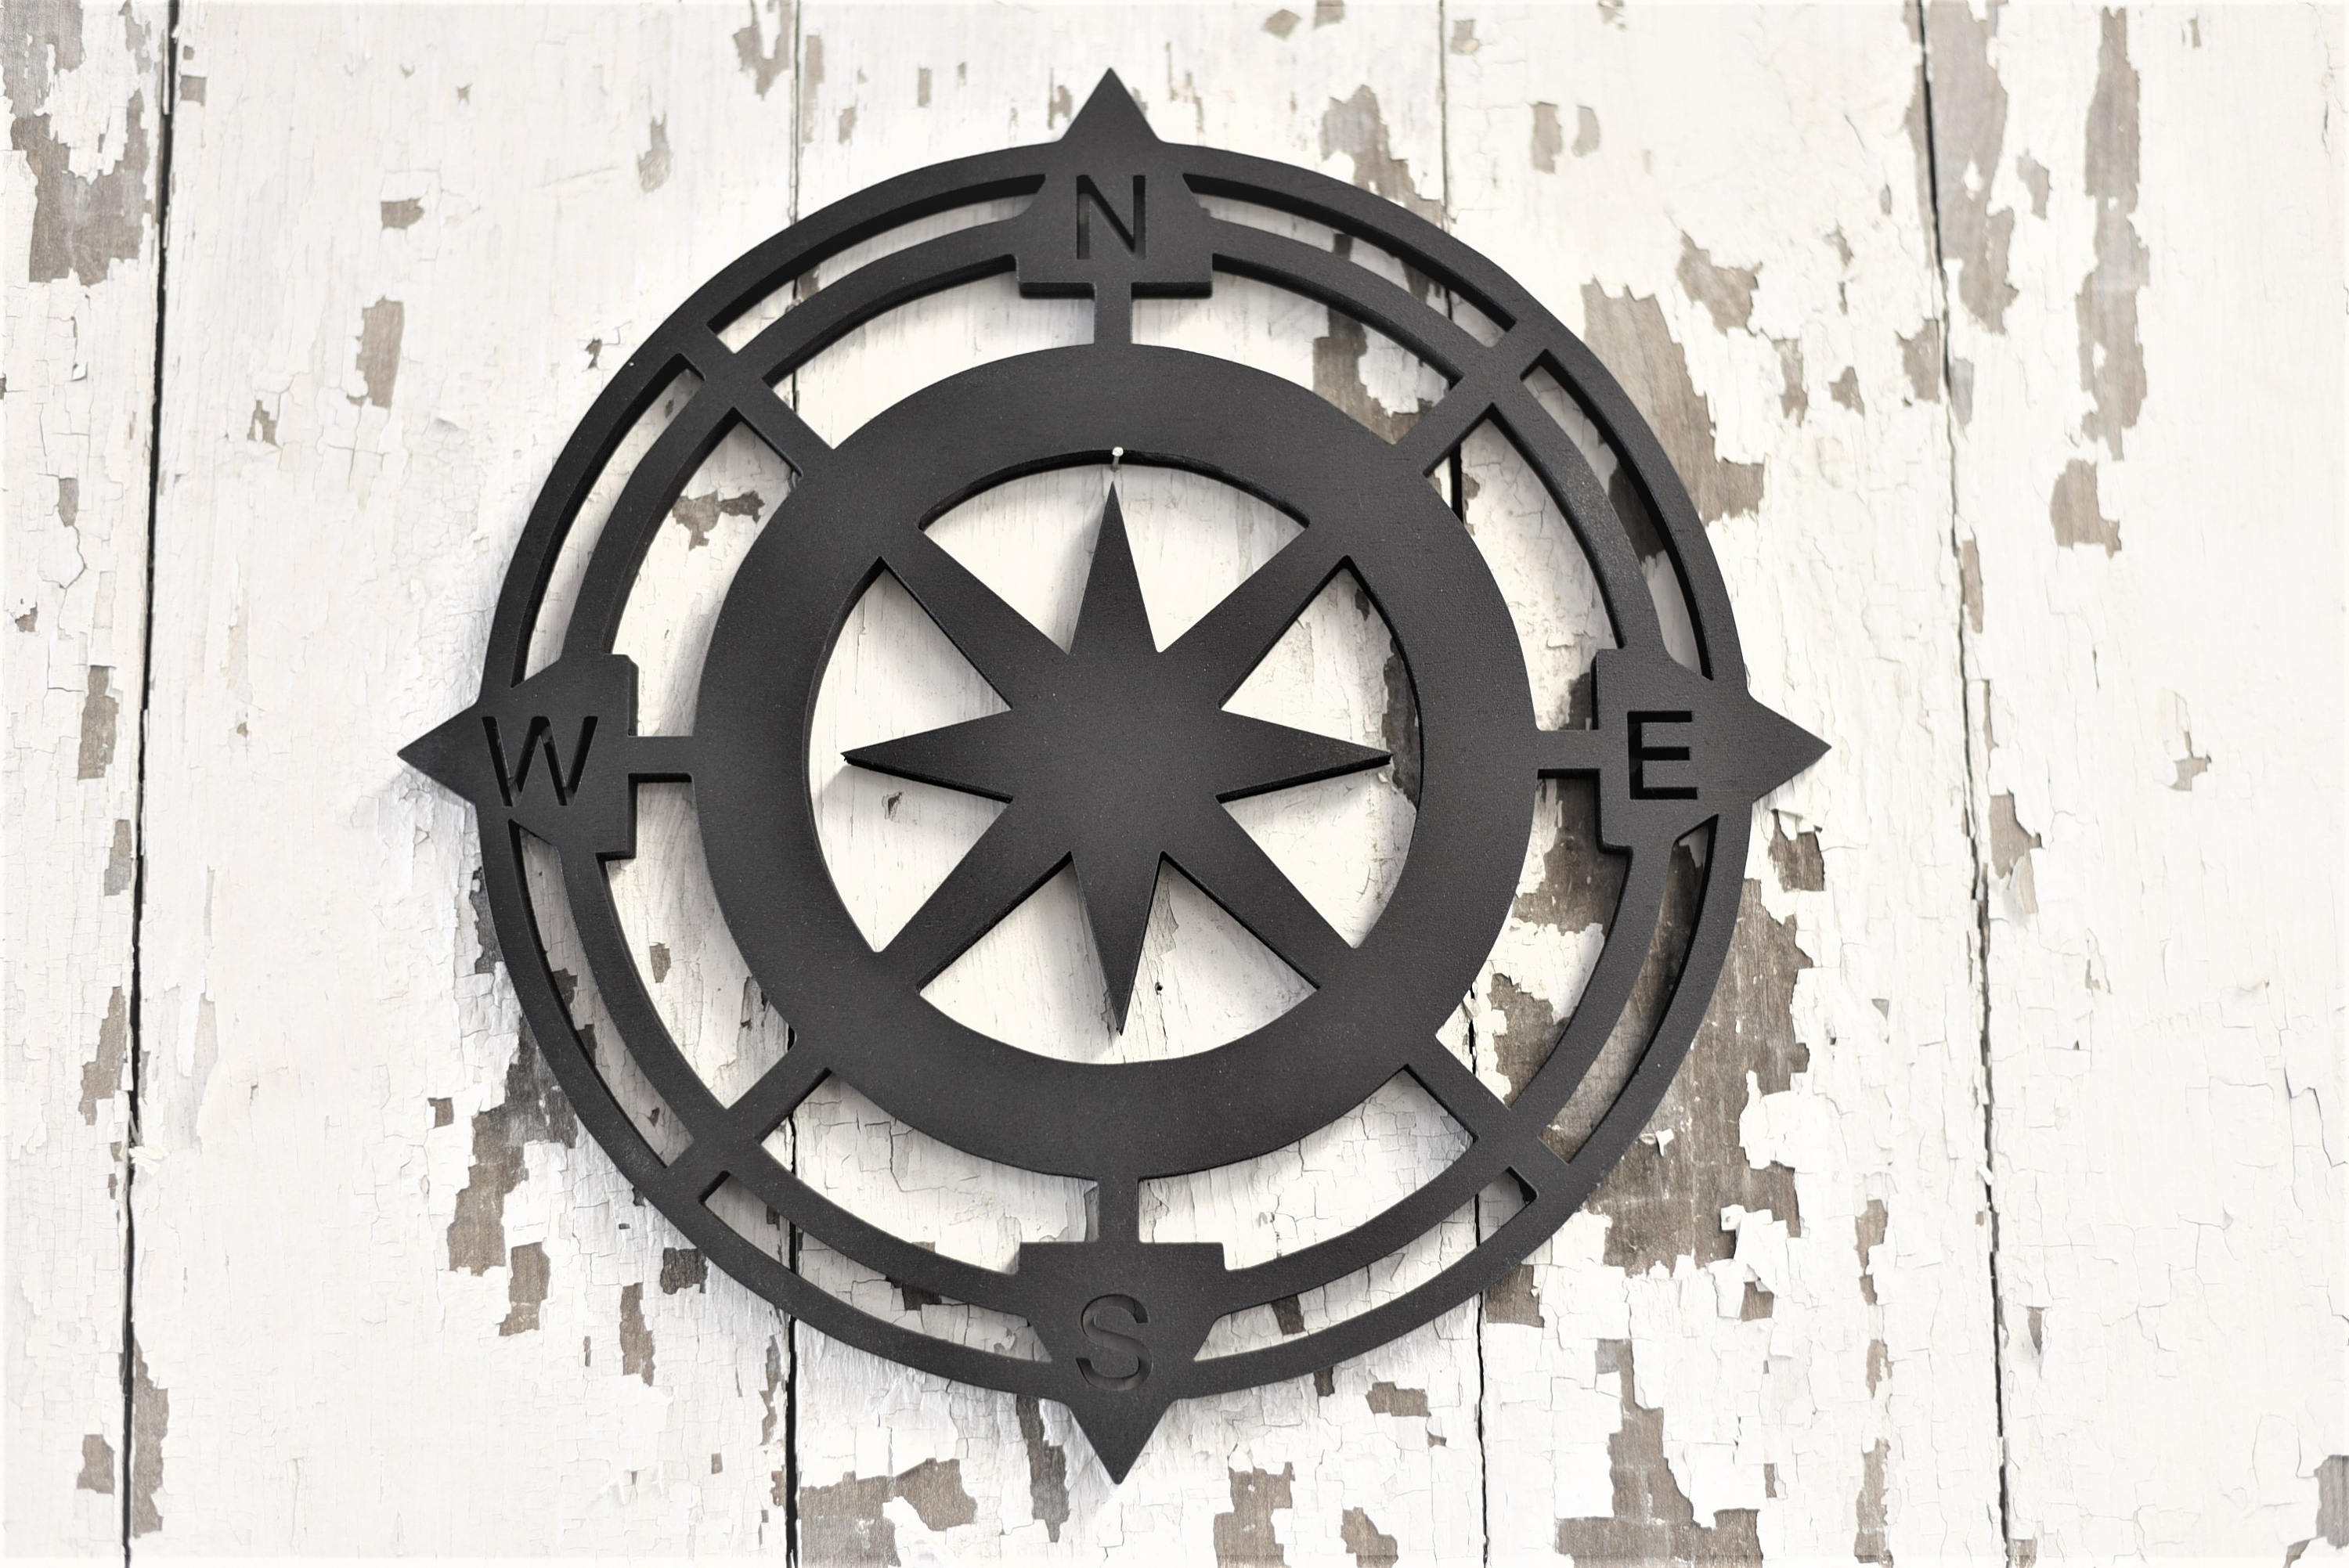 Etsy Pertaining To Round Compass Wall Decor (View 7 of 20)